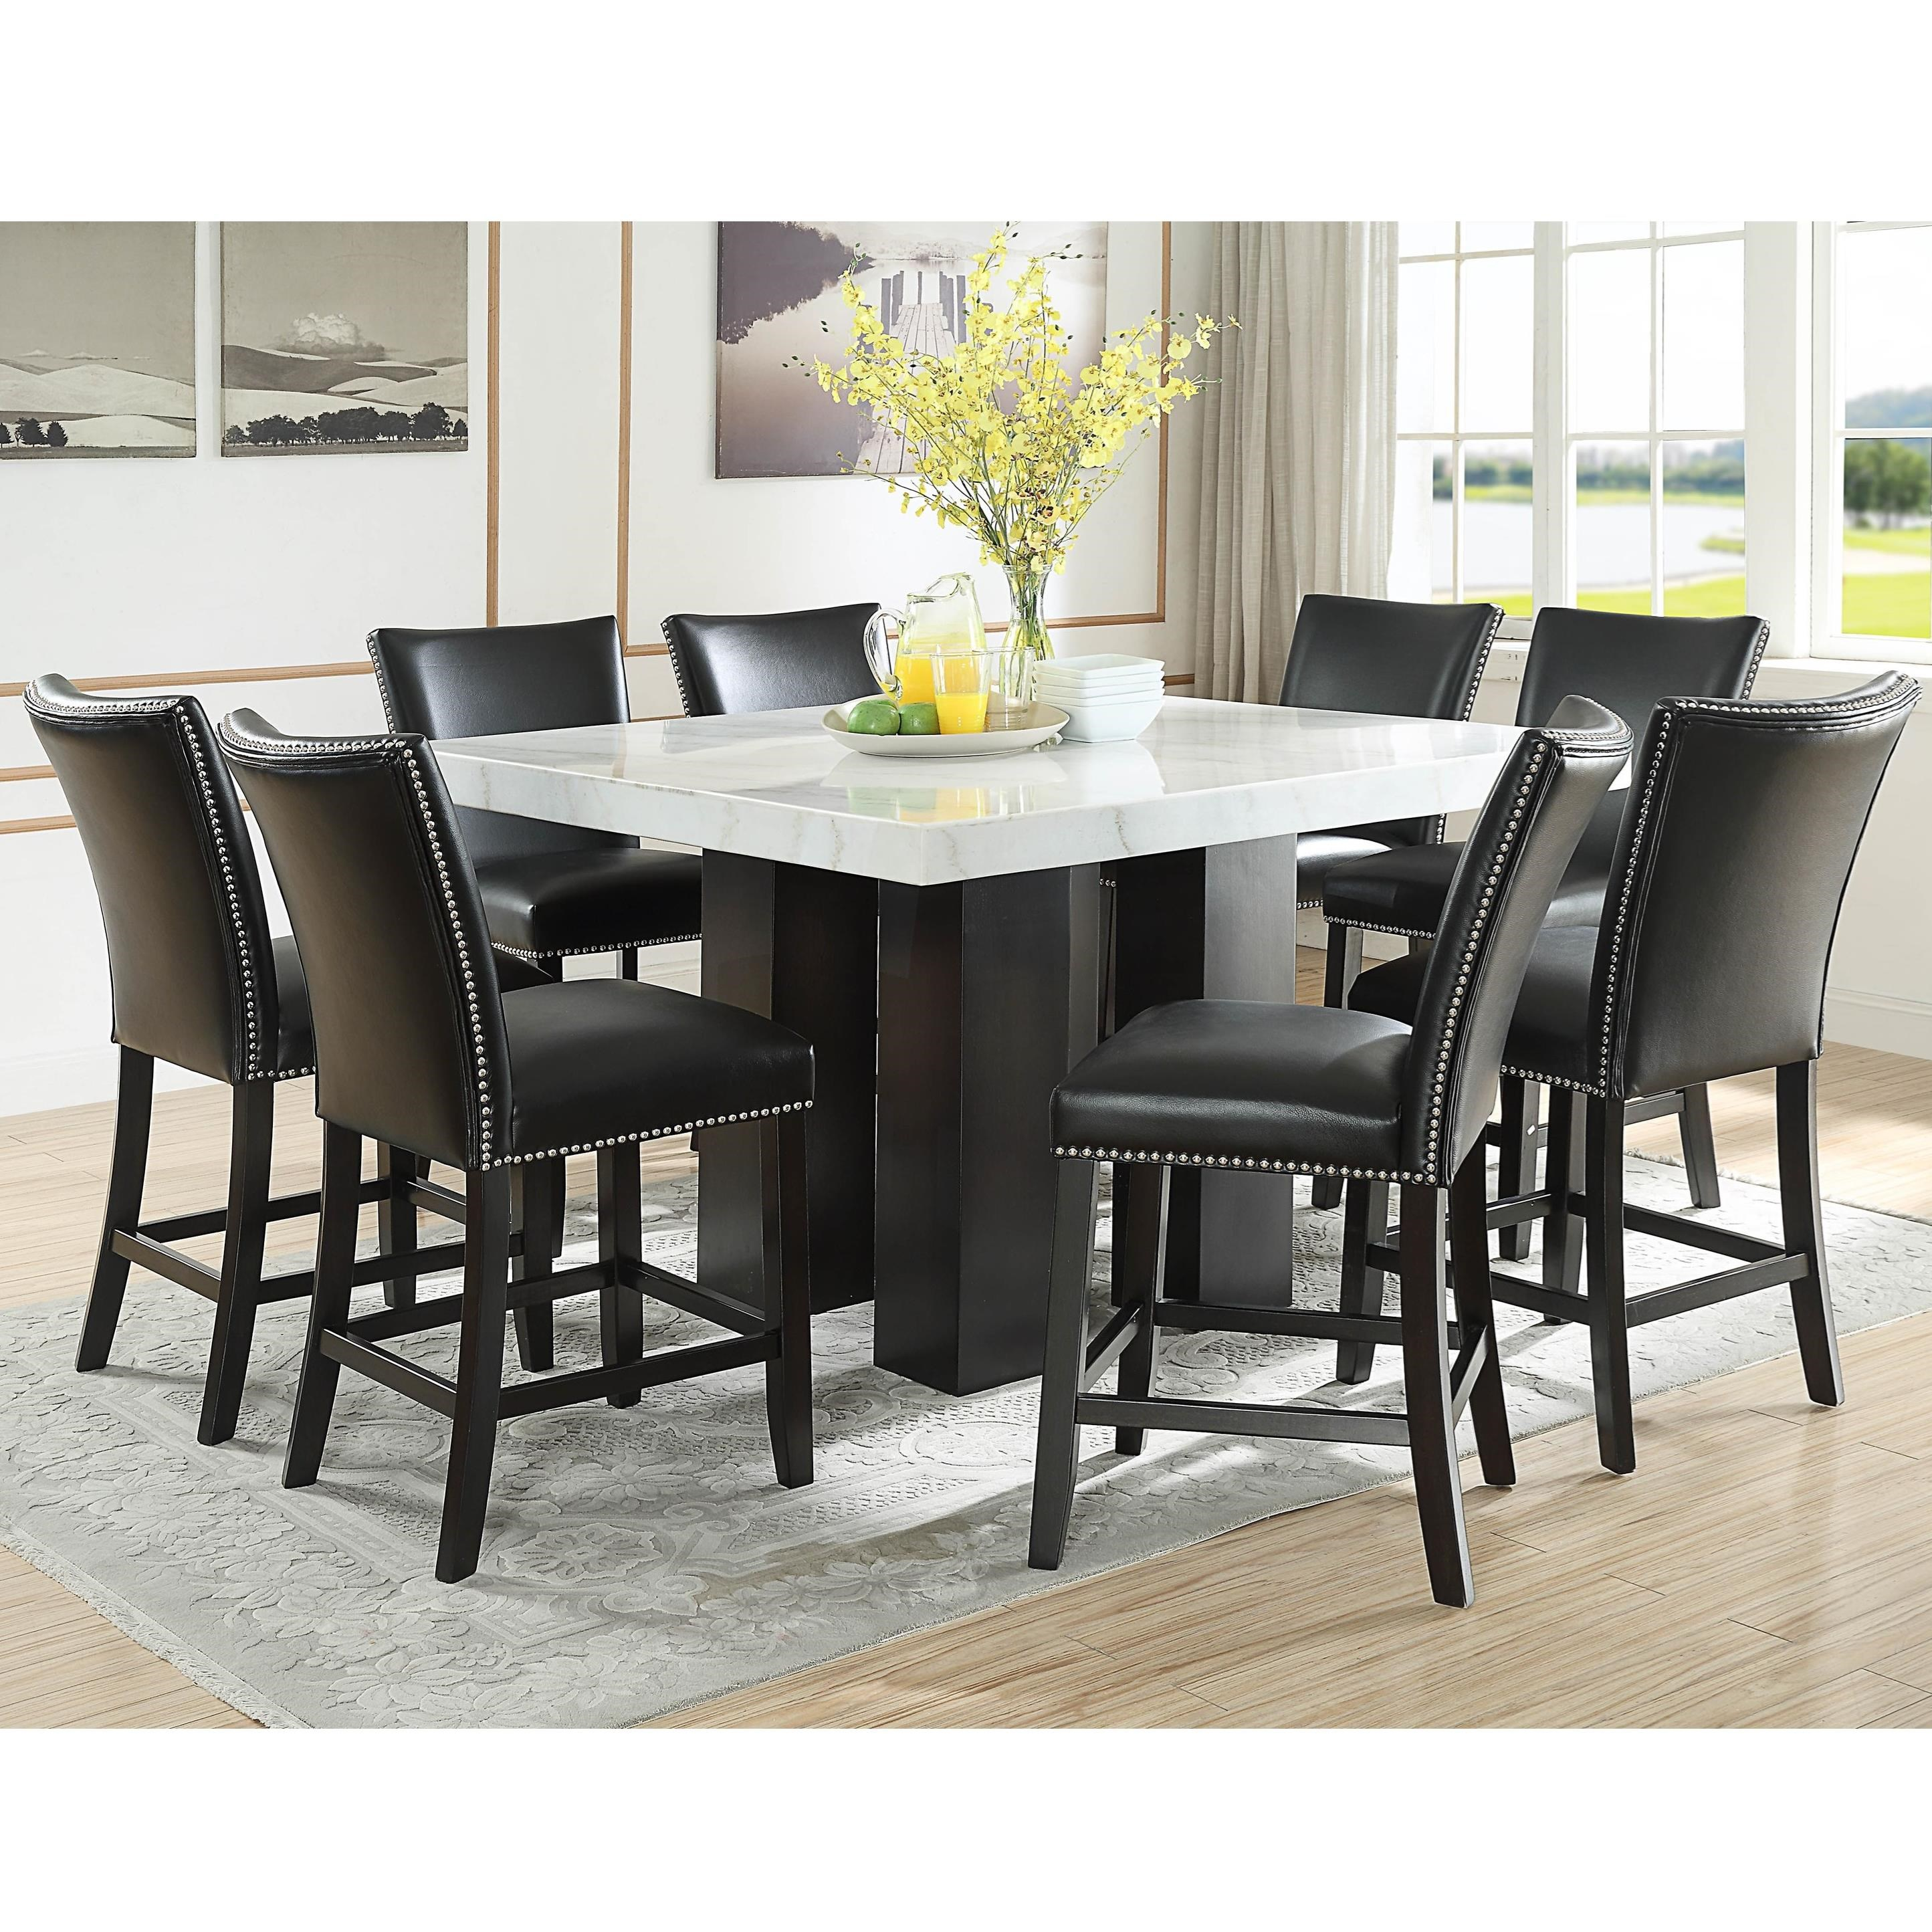 Camila 9 Piece Counter Height Dining Set by Steve Silver at Standard Furniture